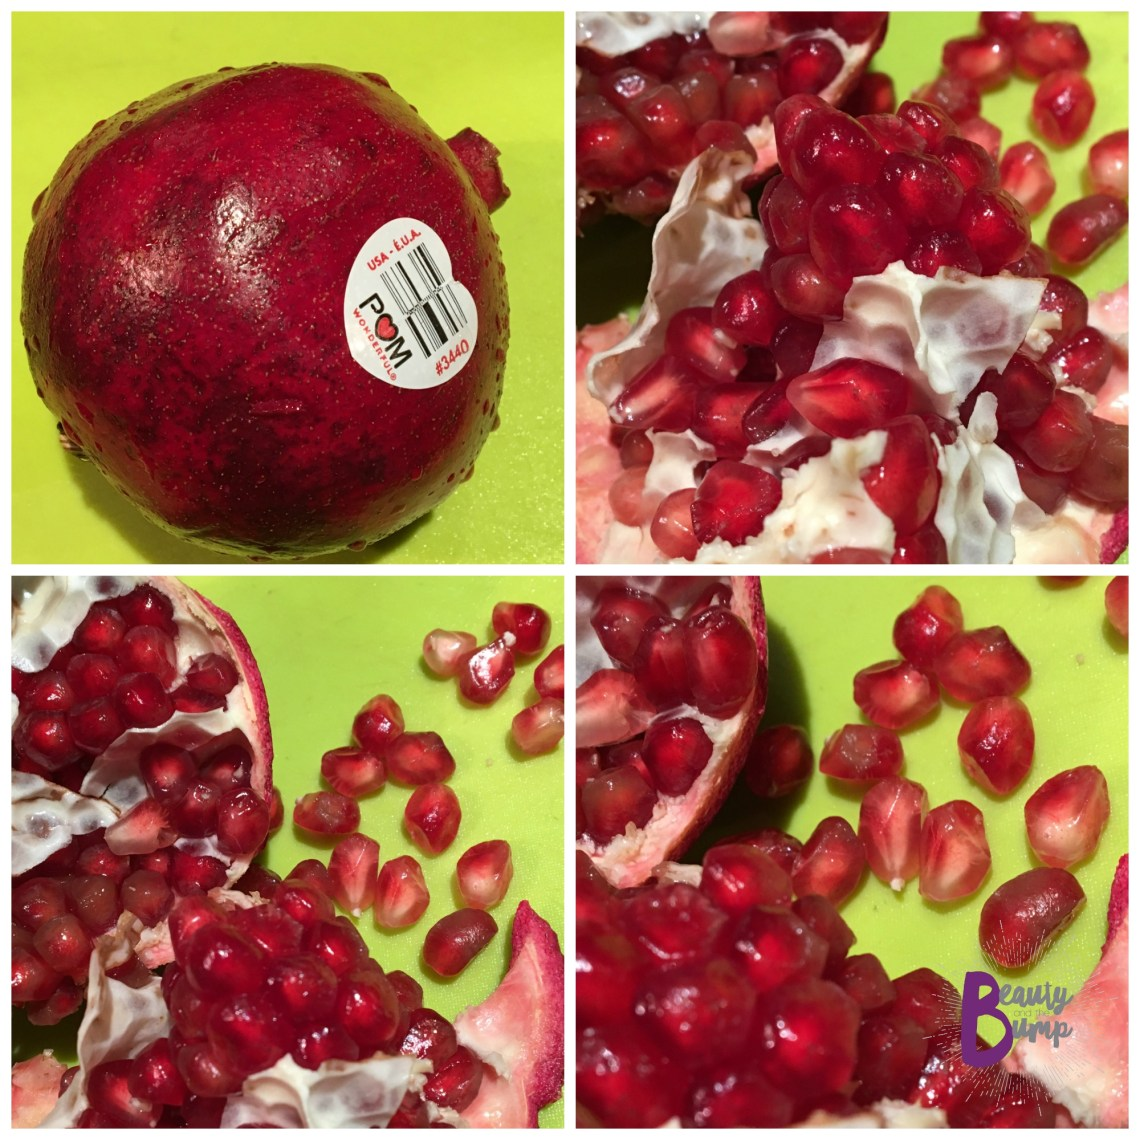 pom-wonder-pomegranate